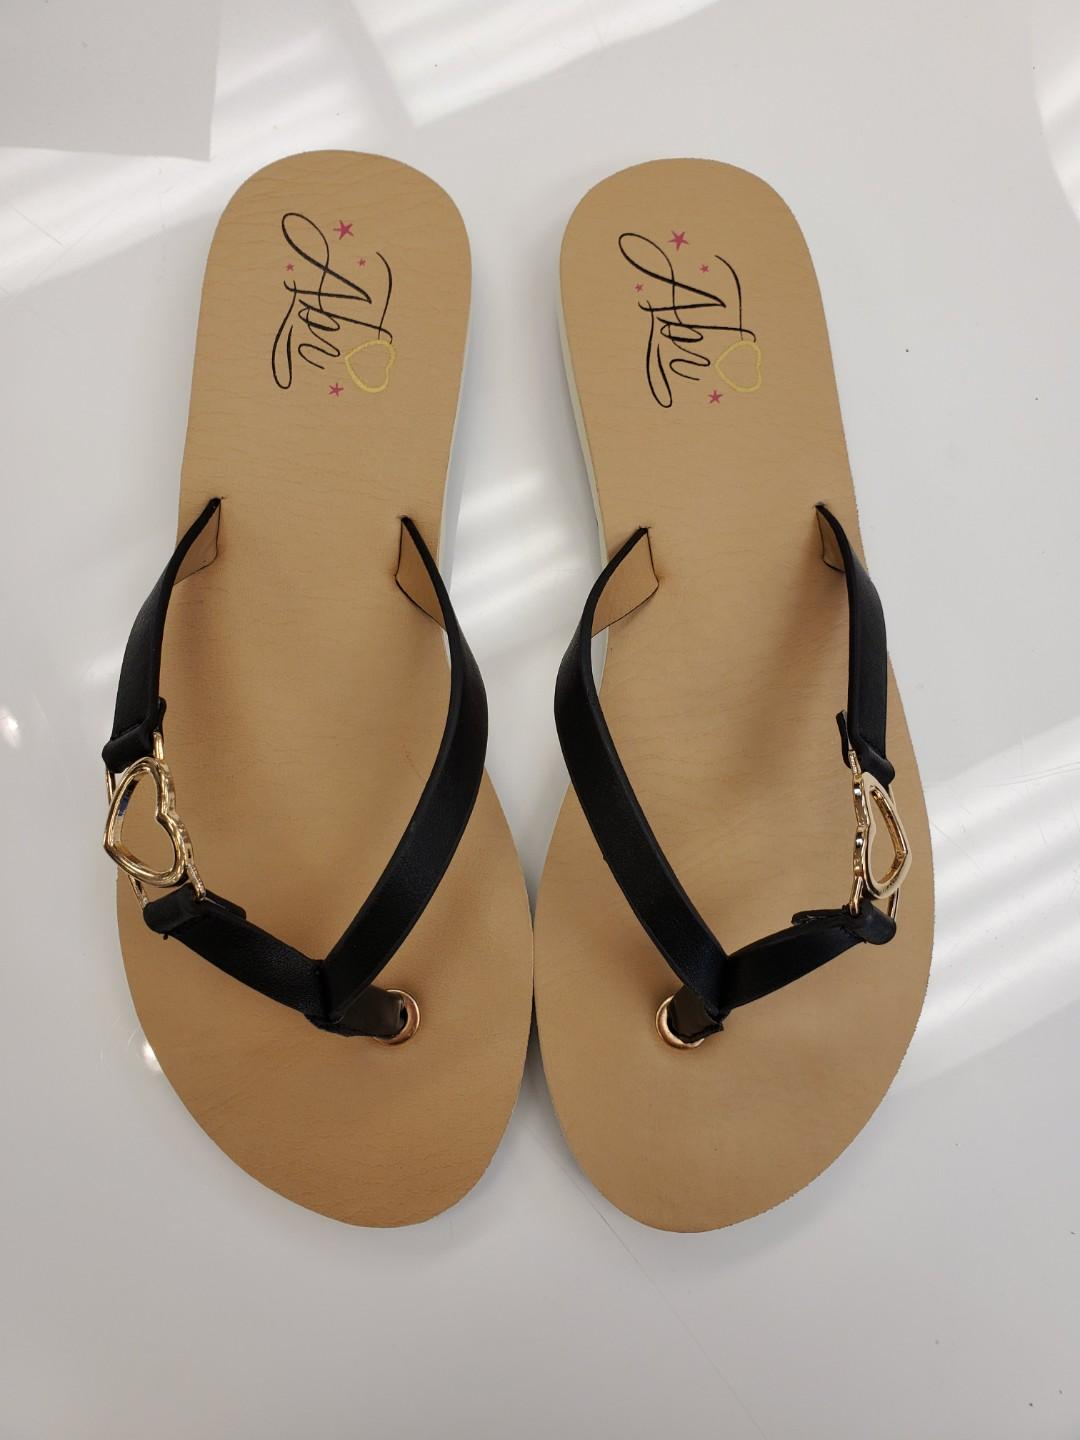 Black Leather Flip Flops, New in Box, Tan Lines in the Shape of a Heart